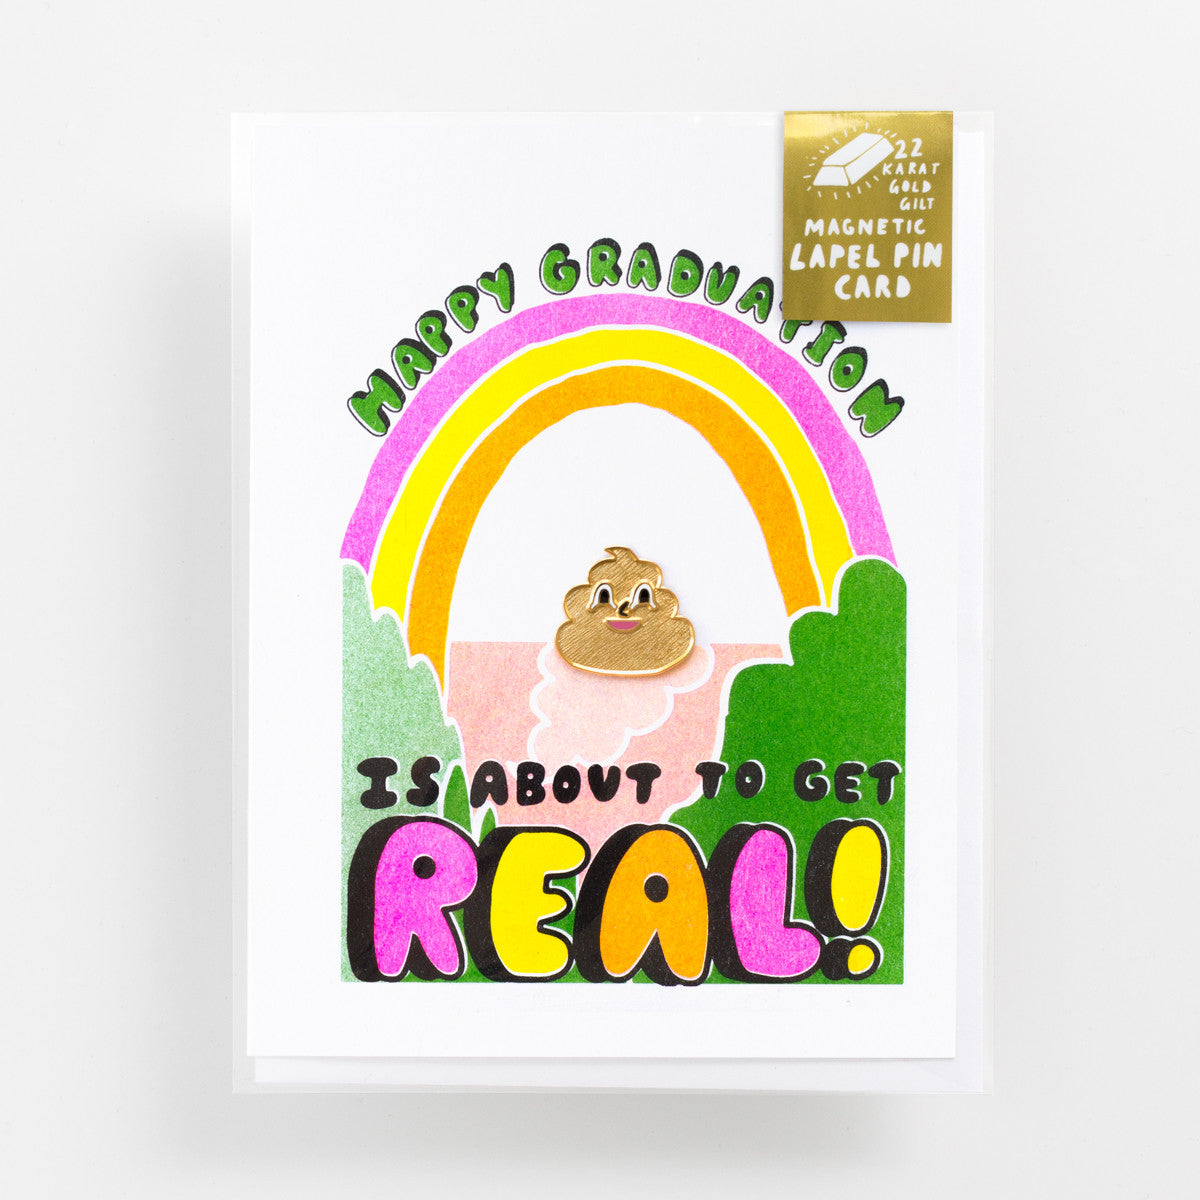 Happy Graduation - Risograph greeting card and magnetic gold poo enamel lapel pin